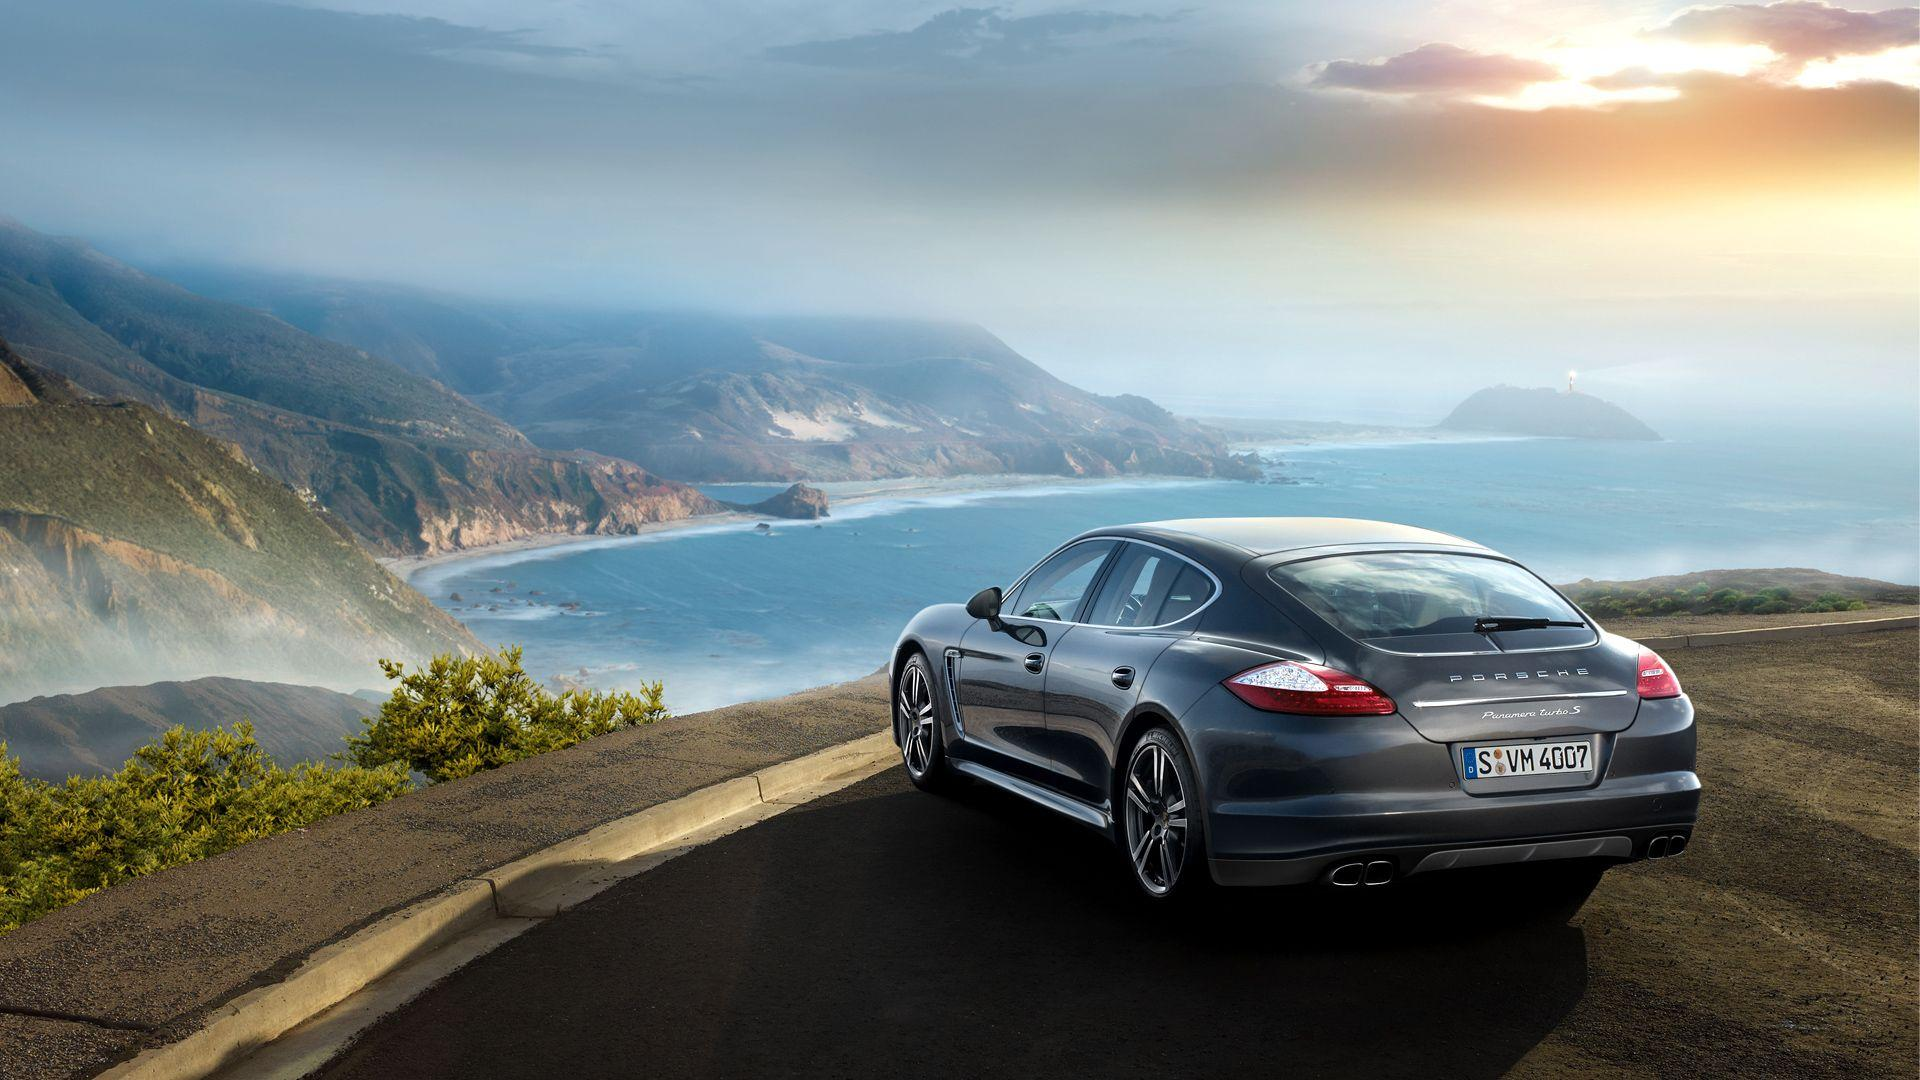 Porsche Panamera Turbo S Wallpapers | HD Wallpapers